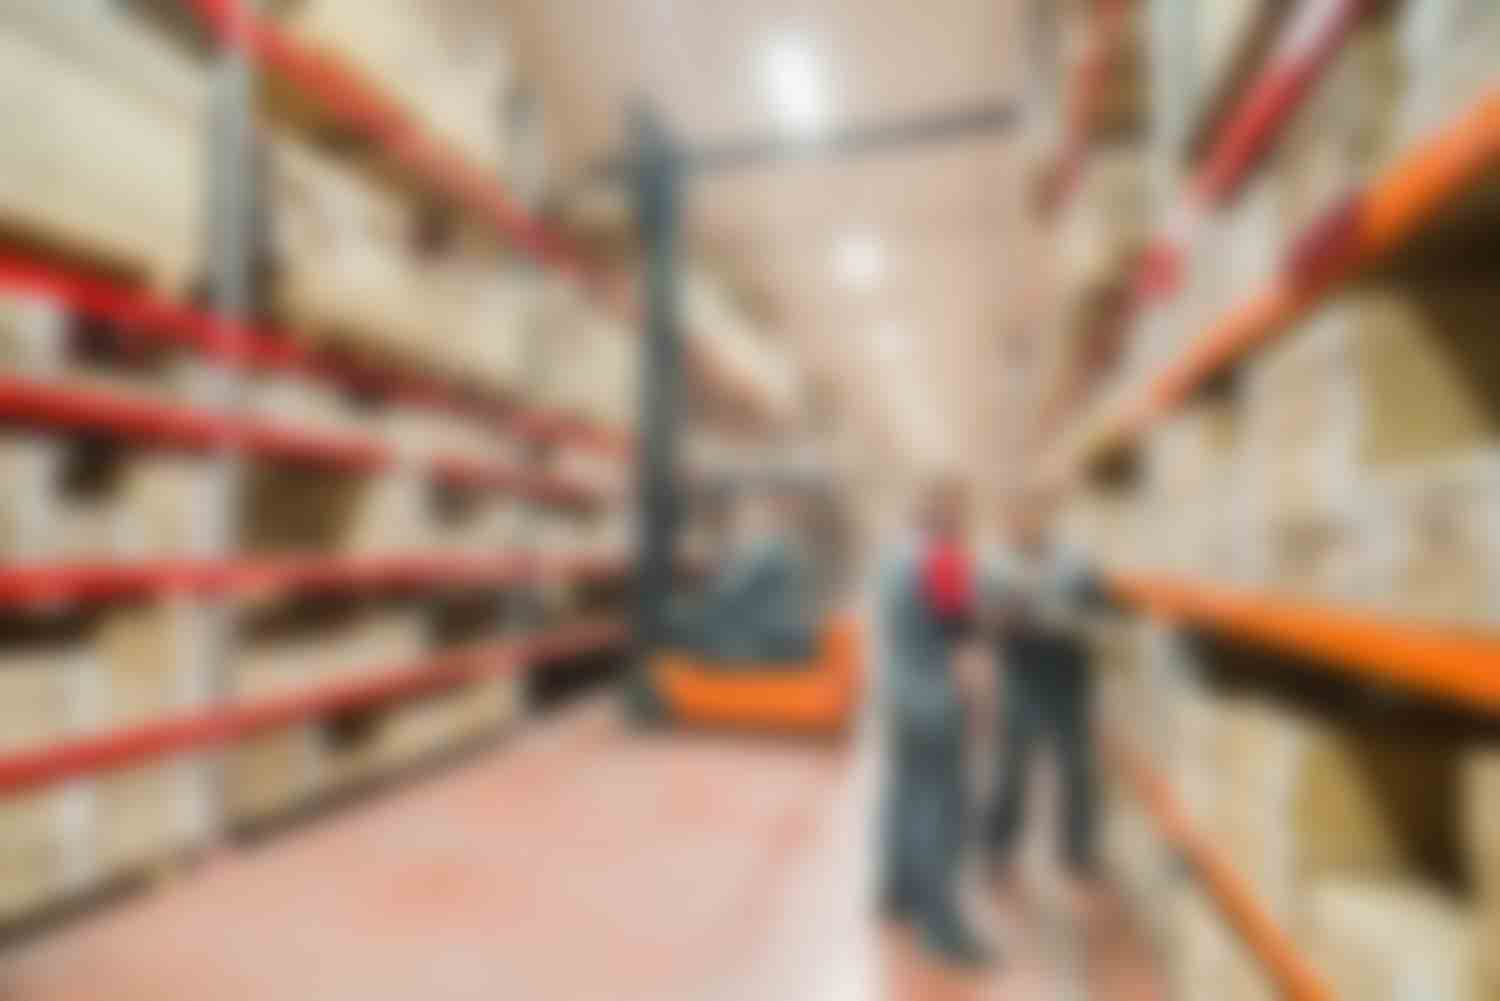 SapphireOne will meet all your warehousing, distribution and logistics requirements with integrated EDI/API functionality